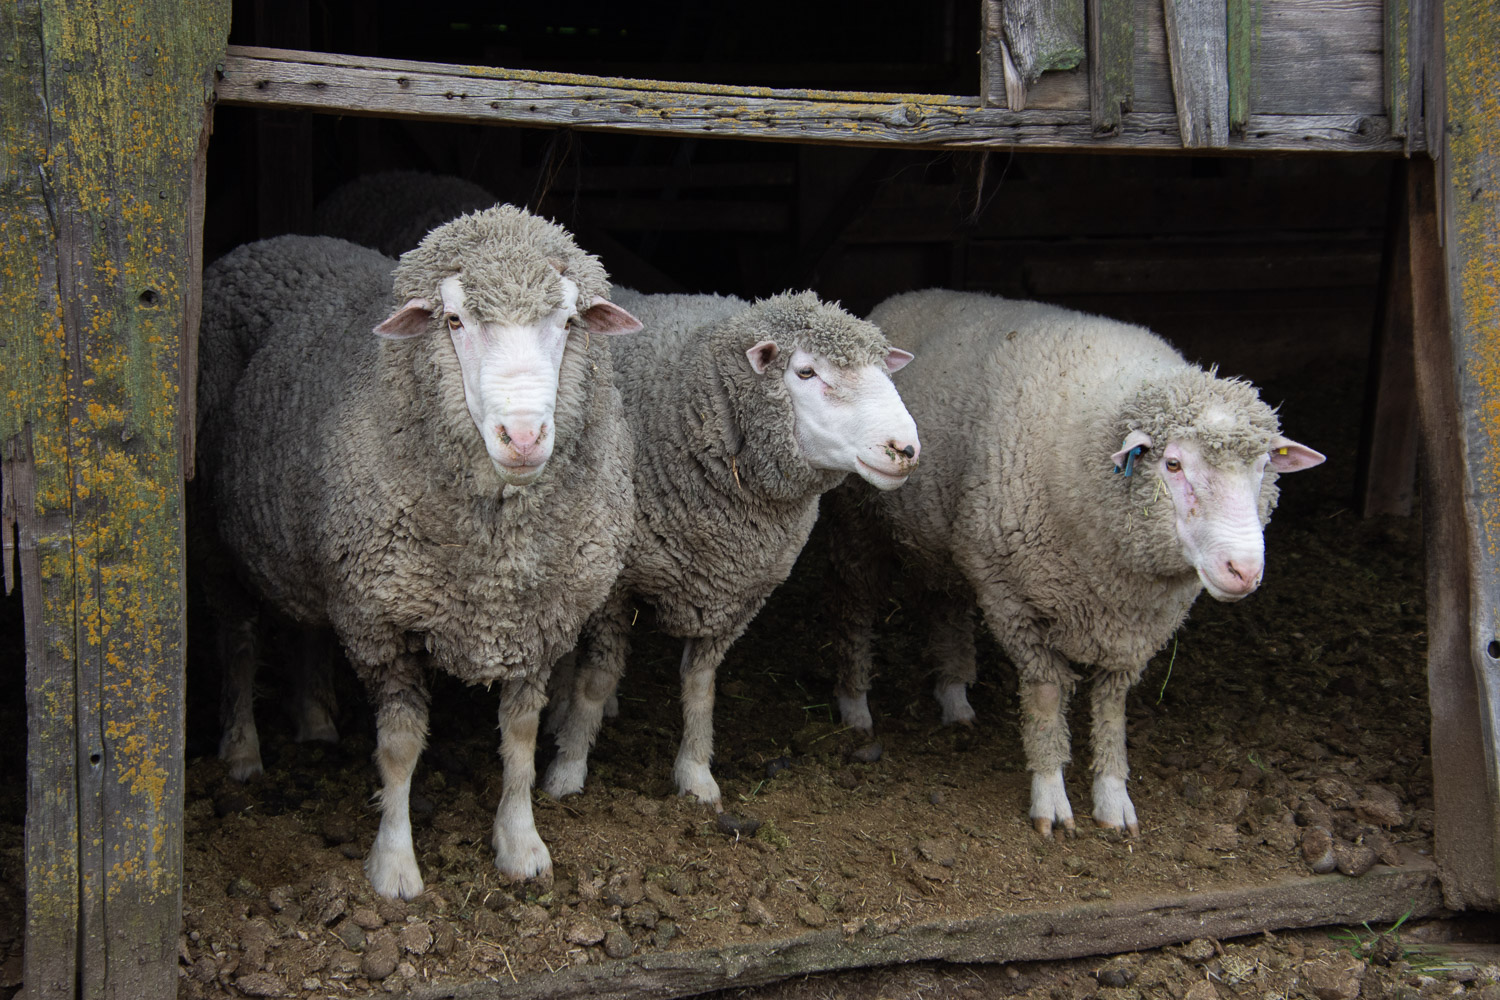 Rams ready for shearing.